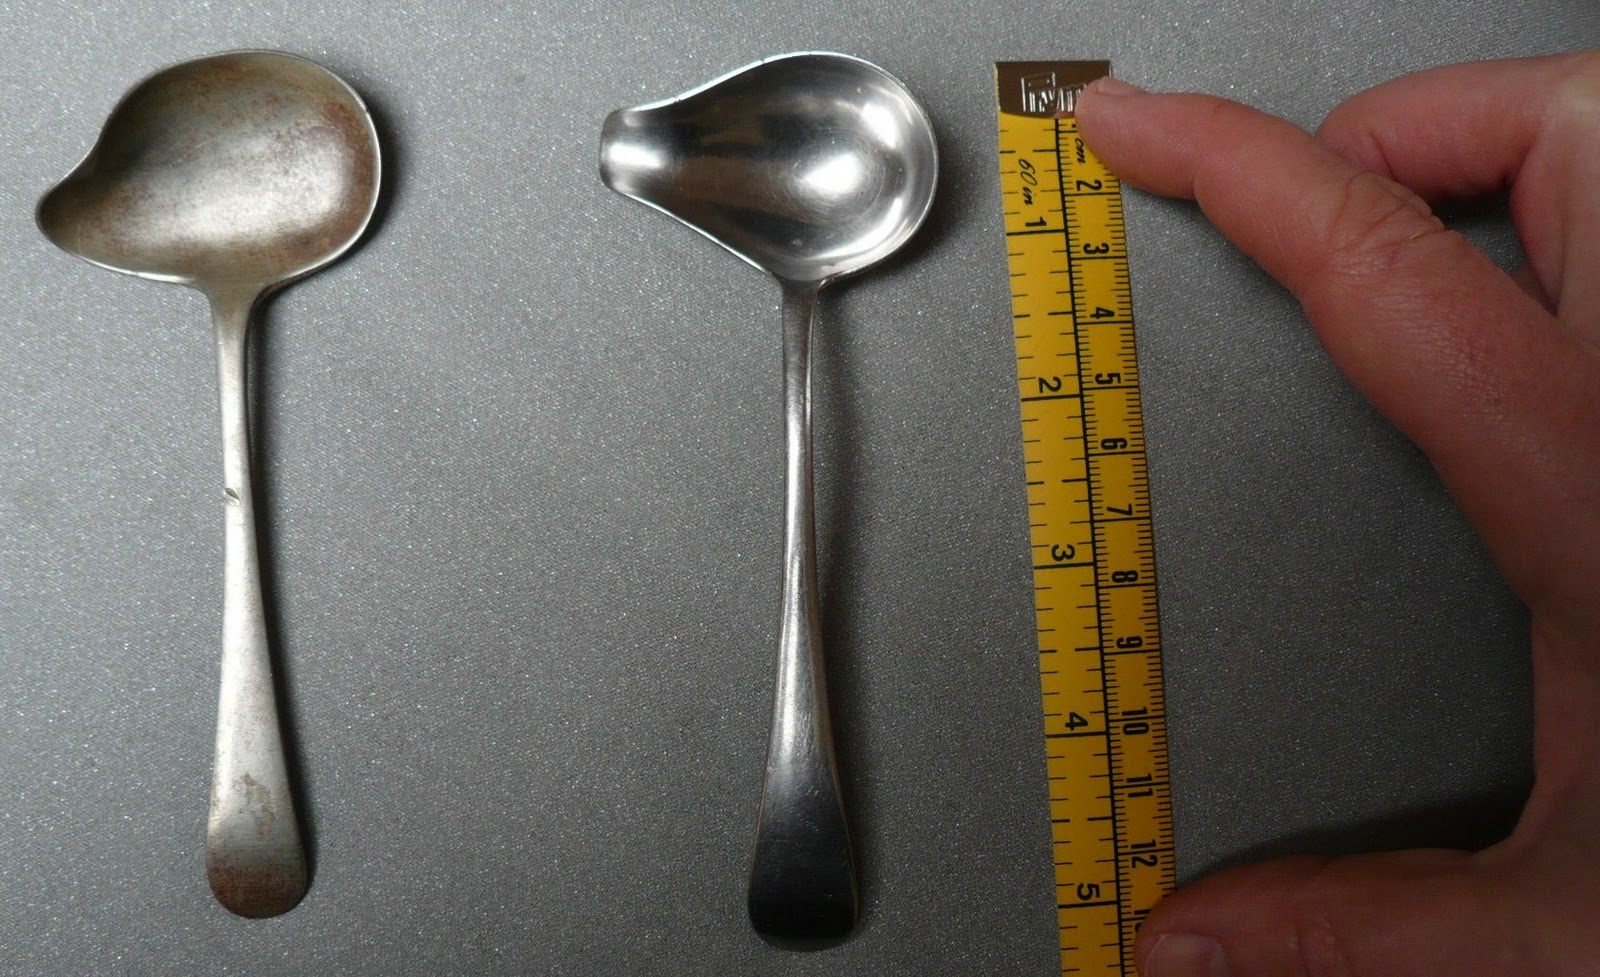 Pilgrim Fireplace tools Awesome Kindred Of the Quiet Way I Have these Spoons